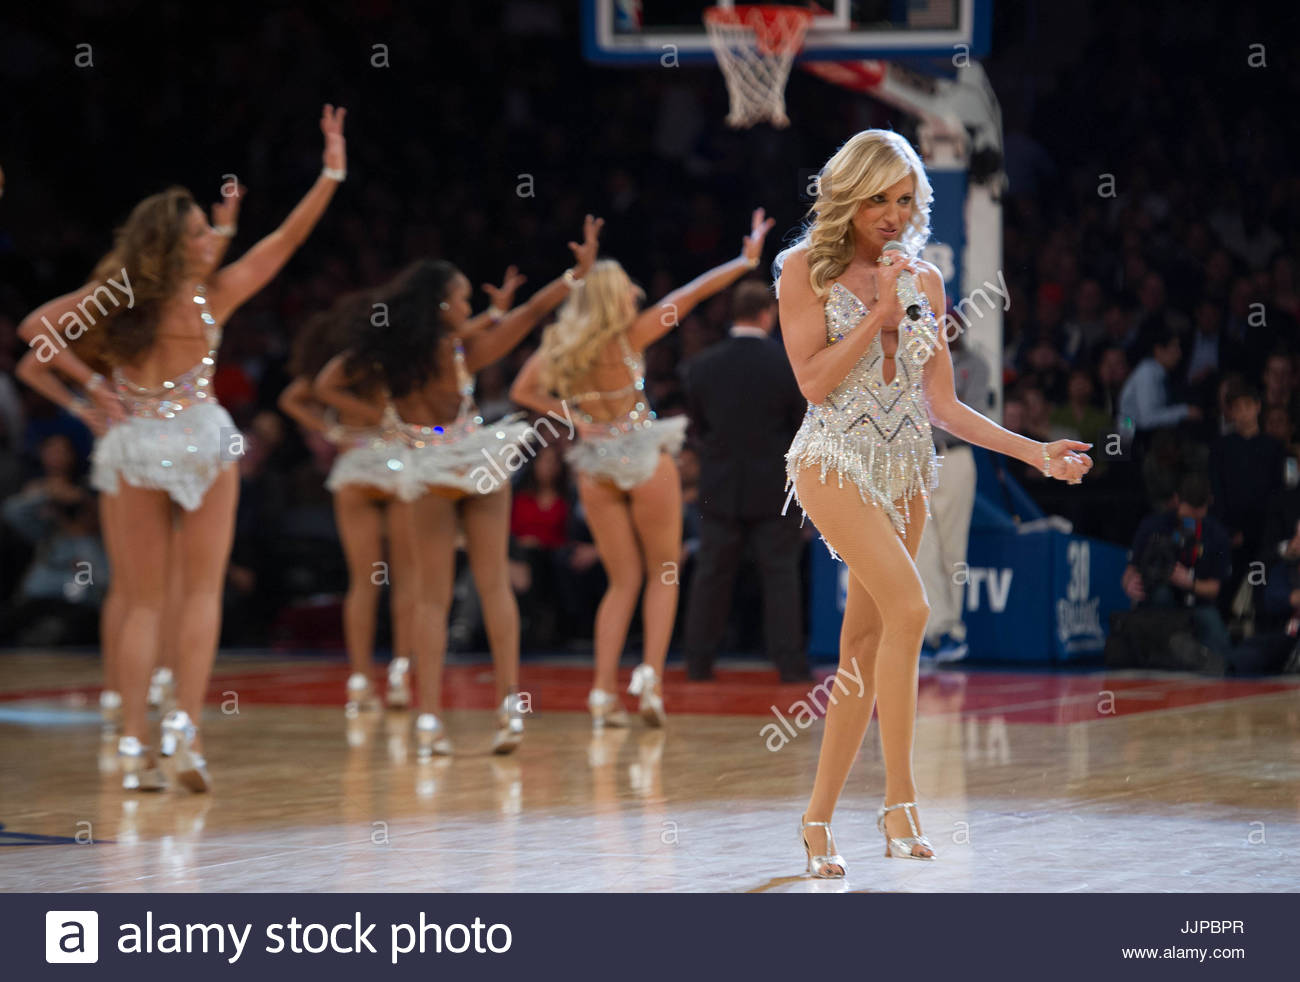 11/14/13 Houston Rockets Vs. New York Knicks At Madison Square Garden: 80u0027s  Artist Debbie Gibson Performs With The Knicks City Dancers